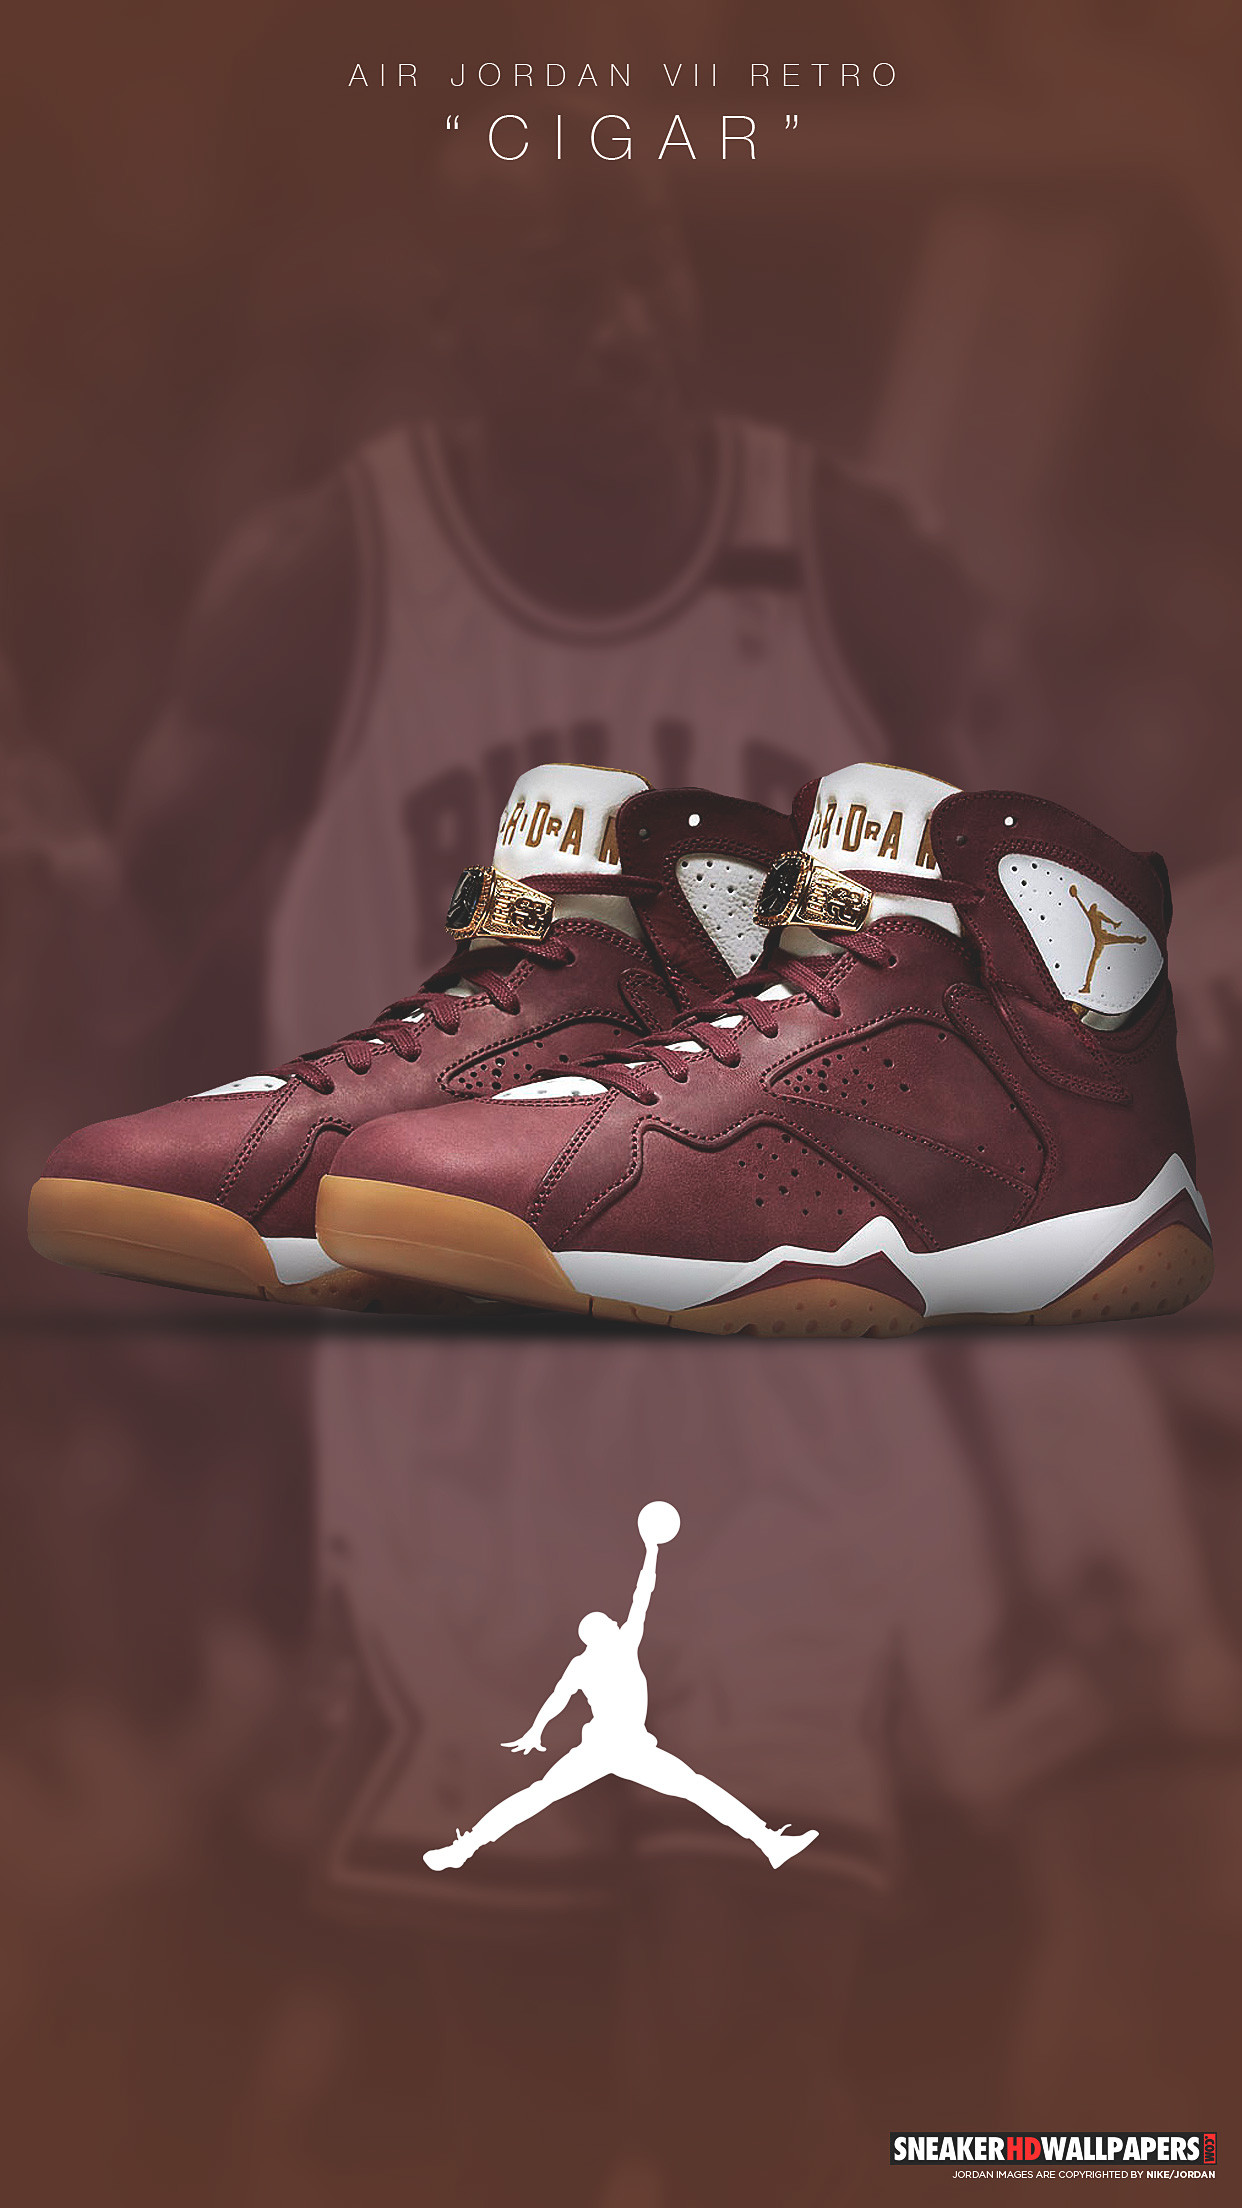 Res: 1242x2208, Download links: Jordan 7 Cigar wallpaper ...